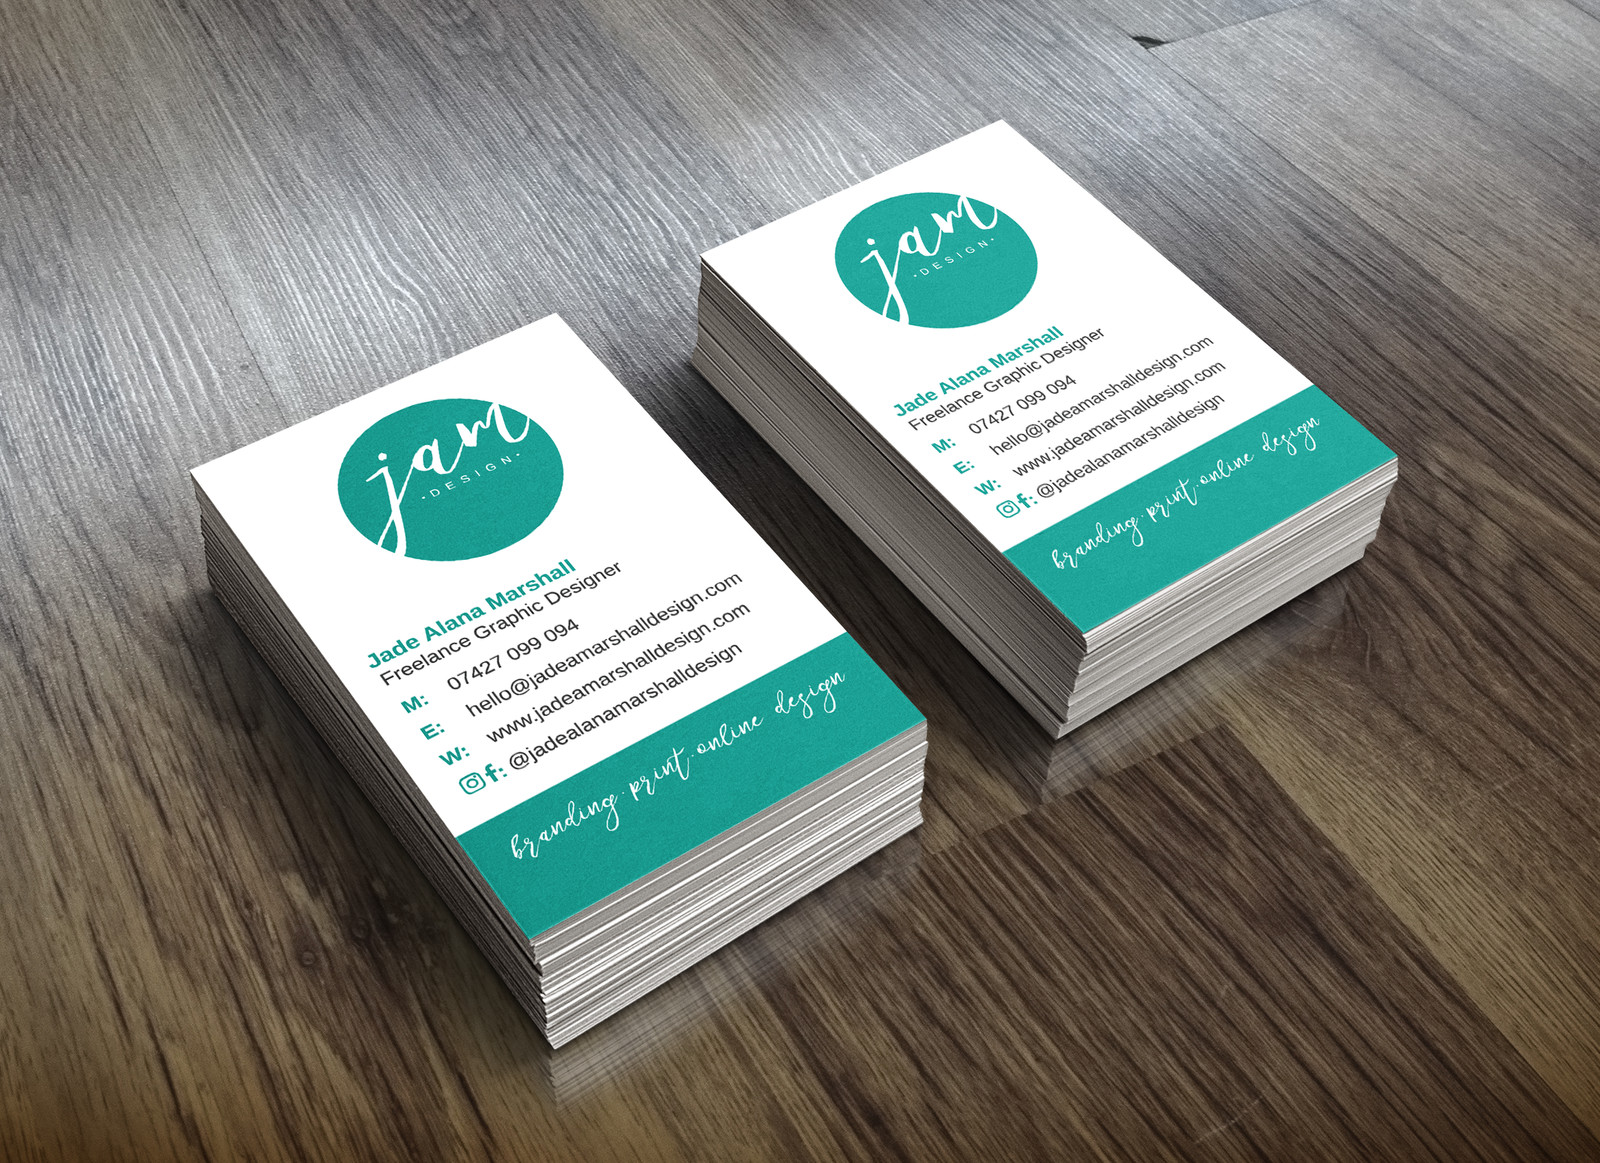 Freelance graphic design business cards choice image card design freelance graphic designer business cards best business cards business cards of freelance graphic designers image collections colourmoves